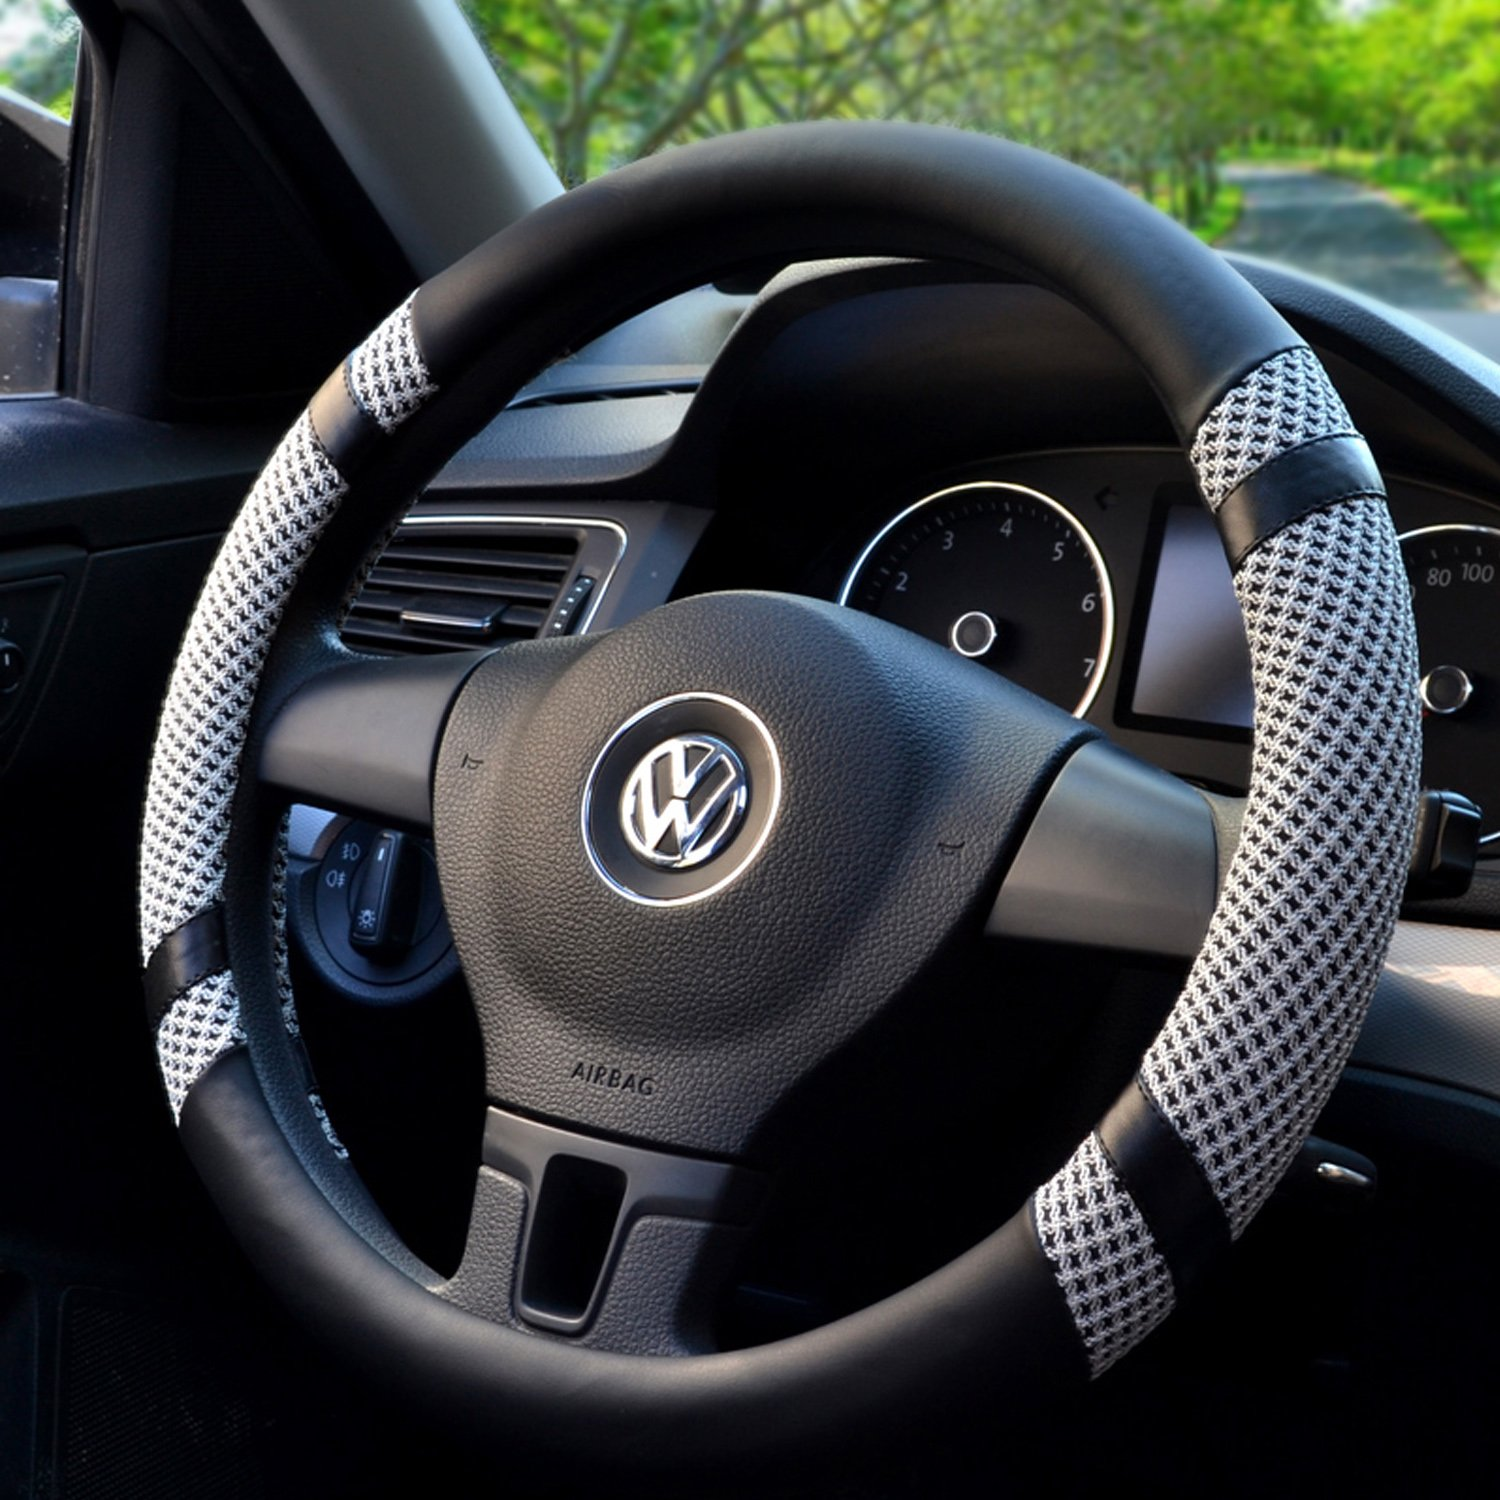 How To Unlock Steering Wheel >> Bokin Steering Wheel Cover Microfiber Leather Viscose Breathable Anti Slip Odorless Warm In Winter Cool In Summer Universal 15 Inches Gray